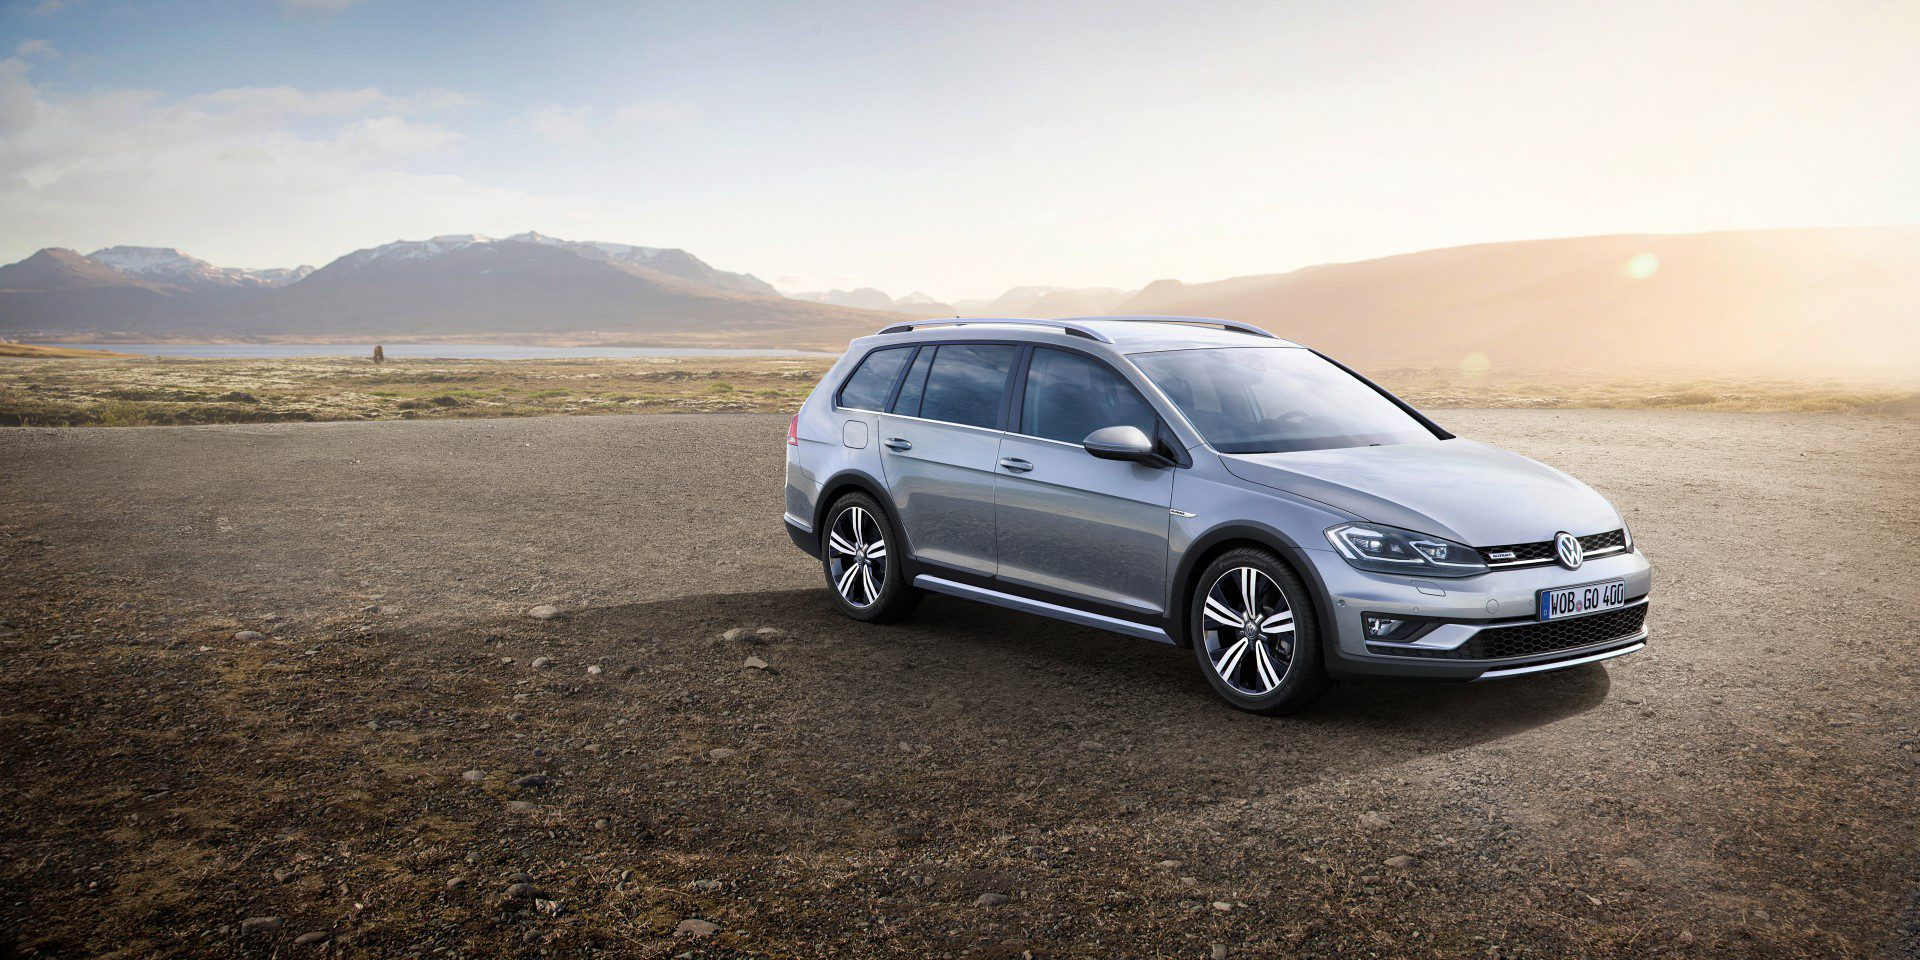 volkswagen presenteert vernieuwde golf variant alltrack. Black Bedroom Furniture Sets. Home Design Ideas